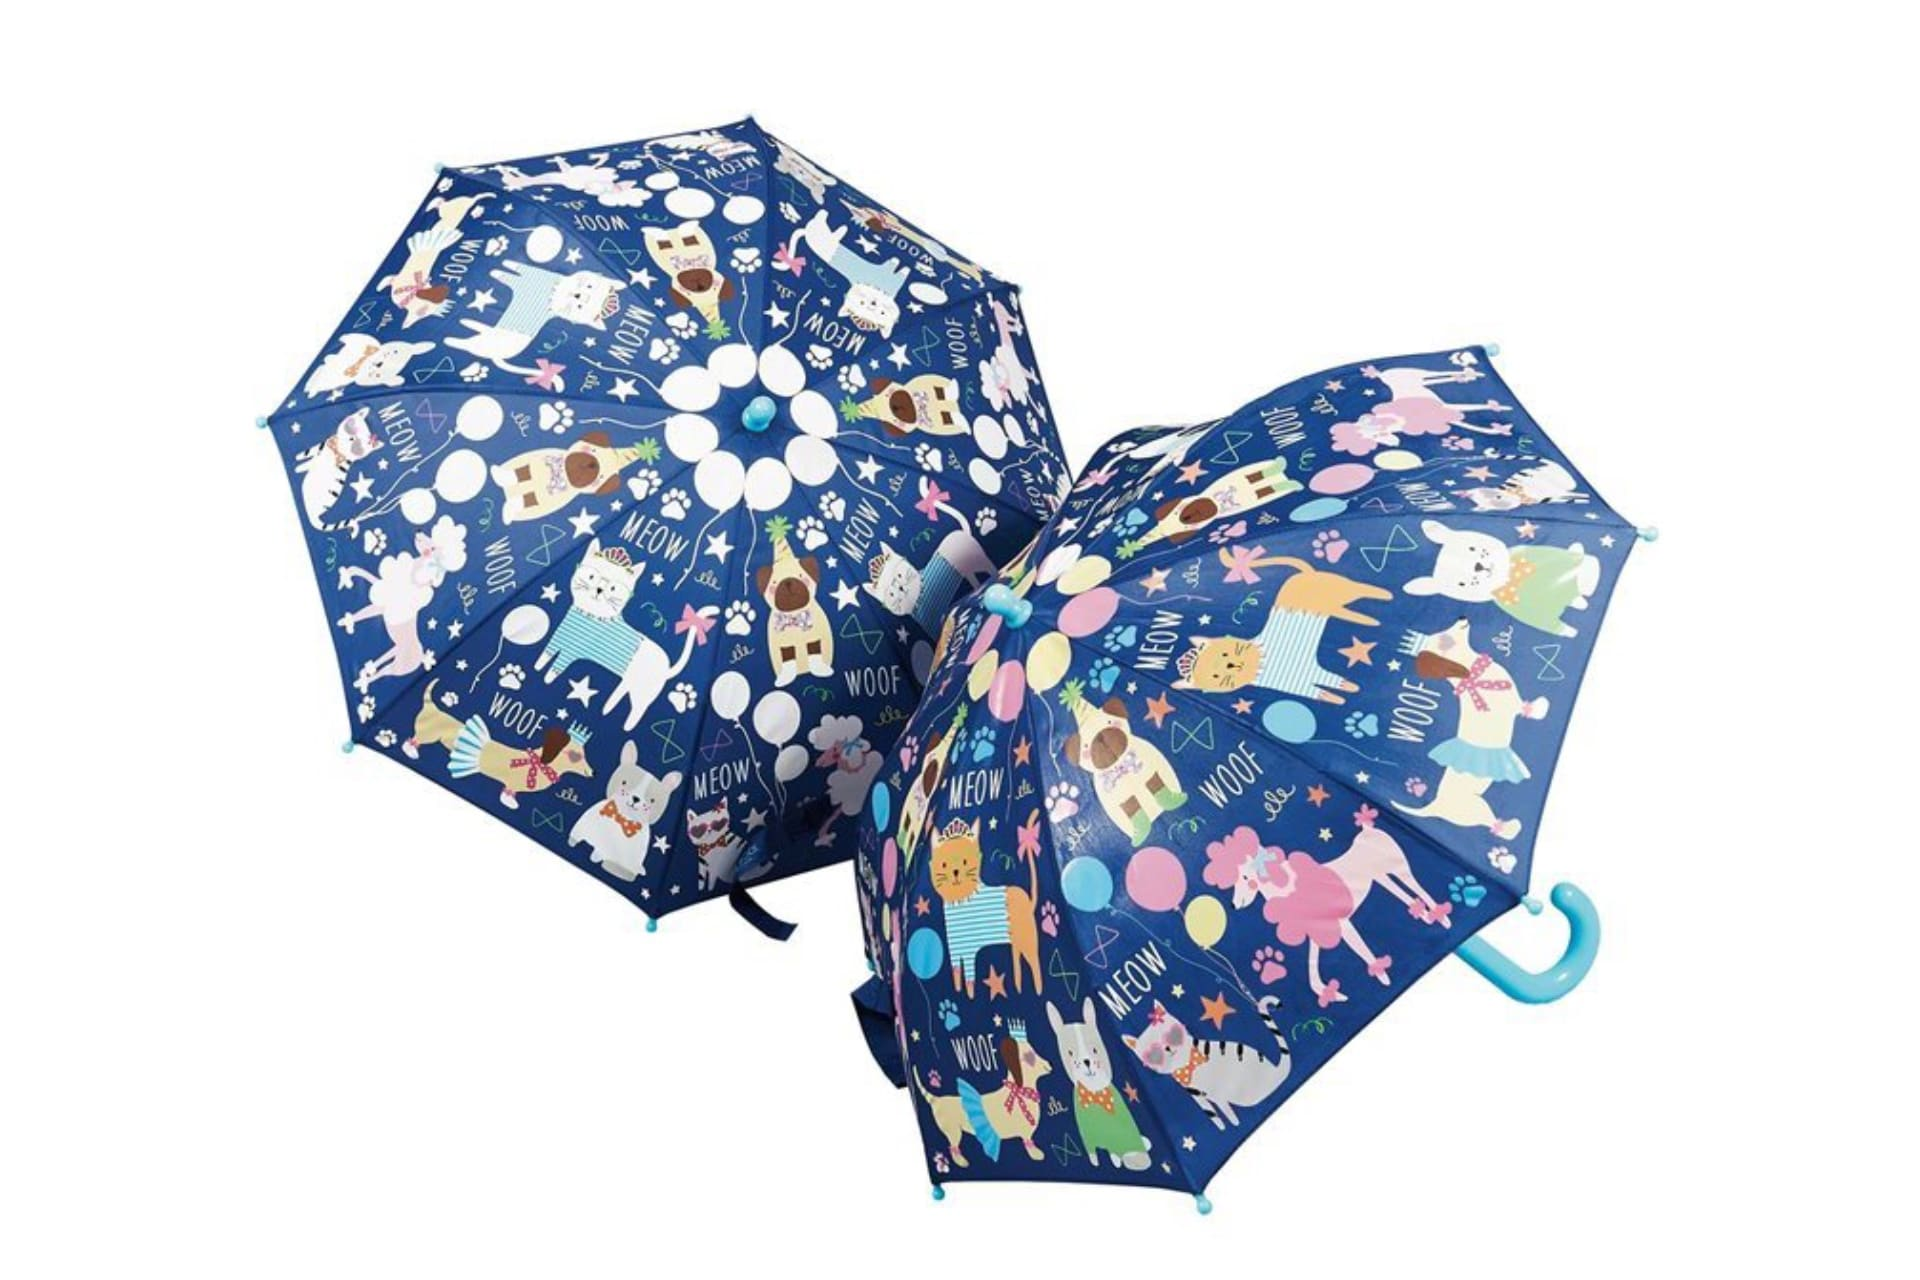 blue umbrellas with cats and dogs